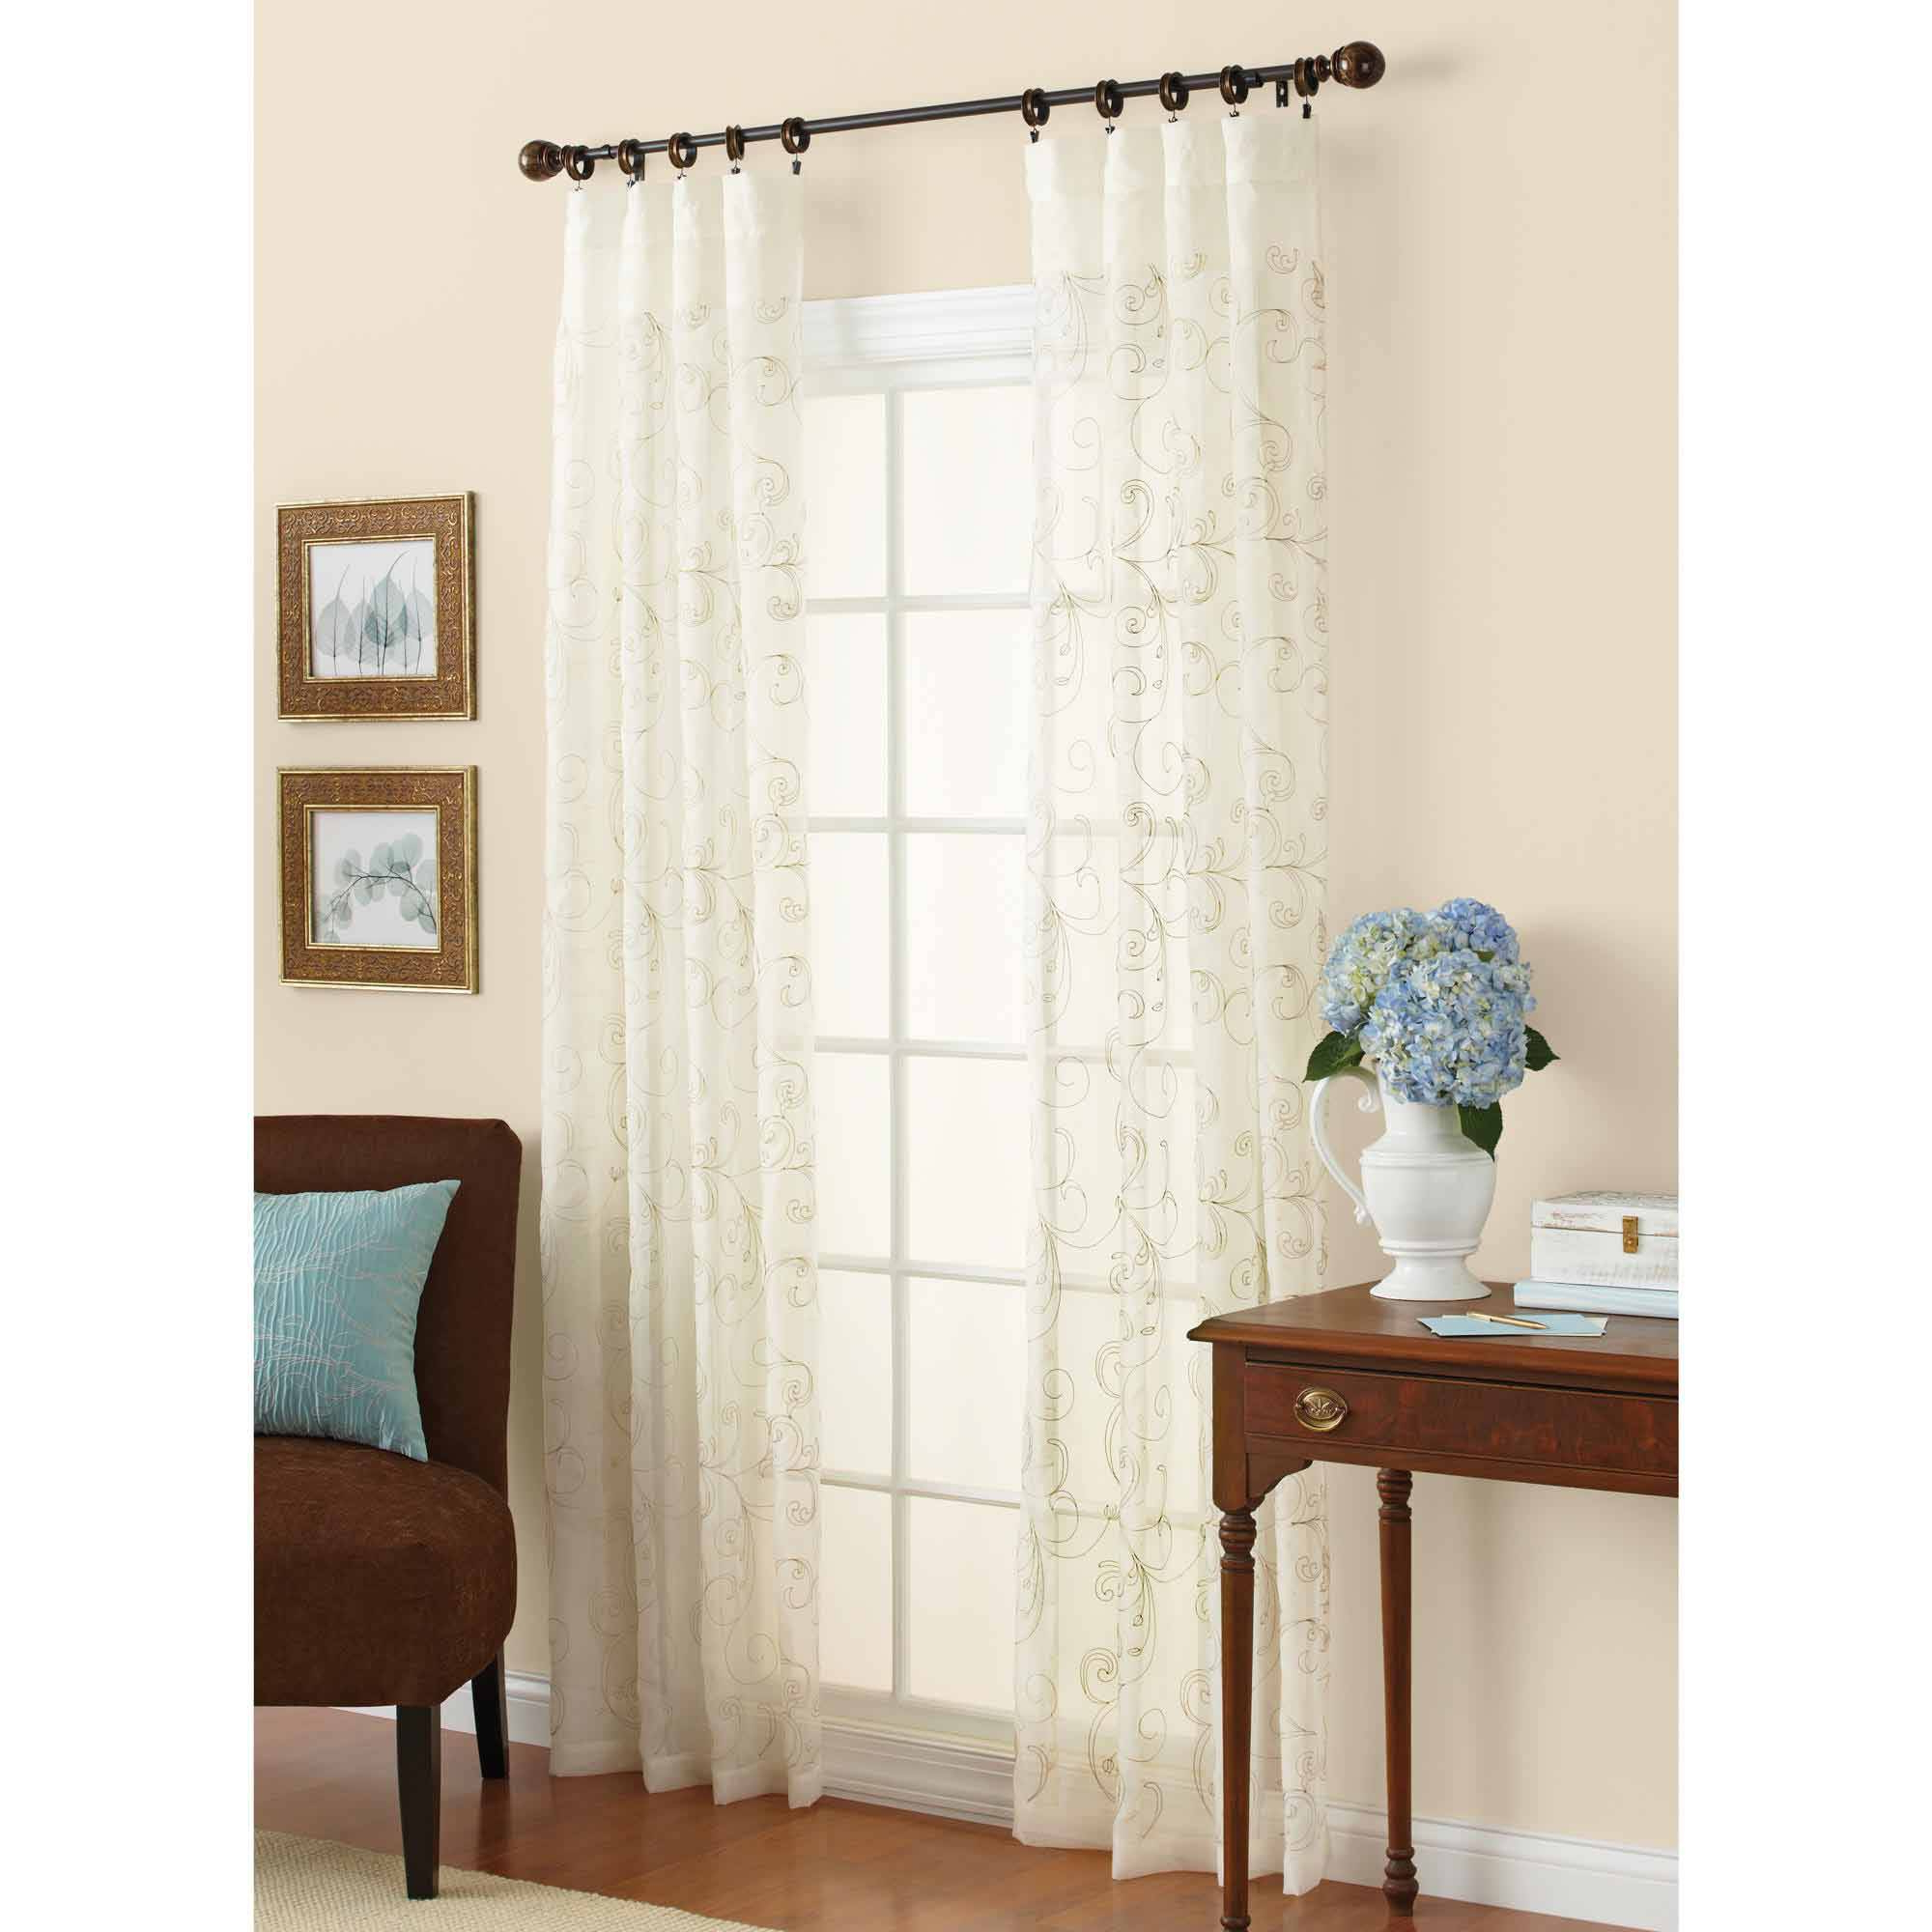 Newest Kida Embroidered Sheer Curtain Panels Intended For Better Homes & Gardens Embroidered Sheer Curtain Panel – Walmart (View 5 of 20)